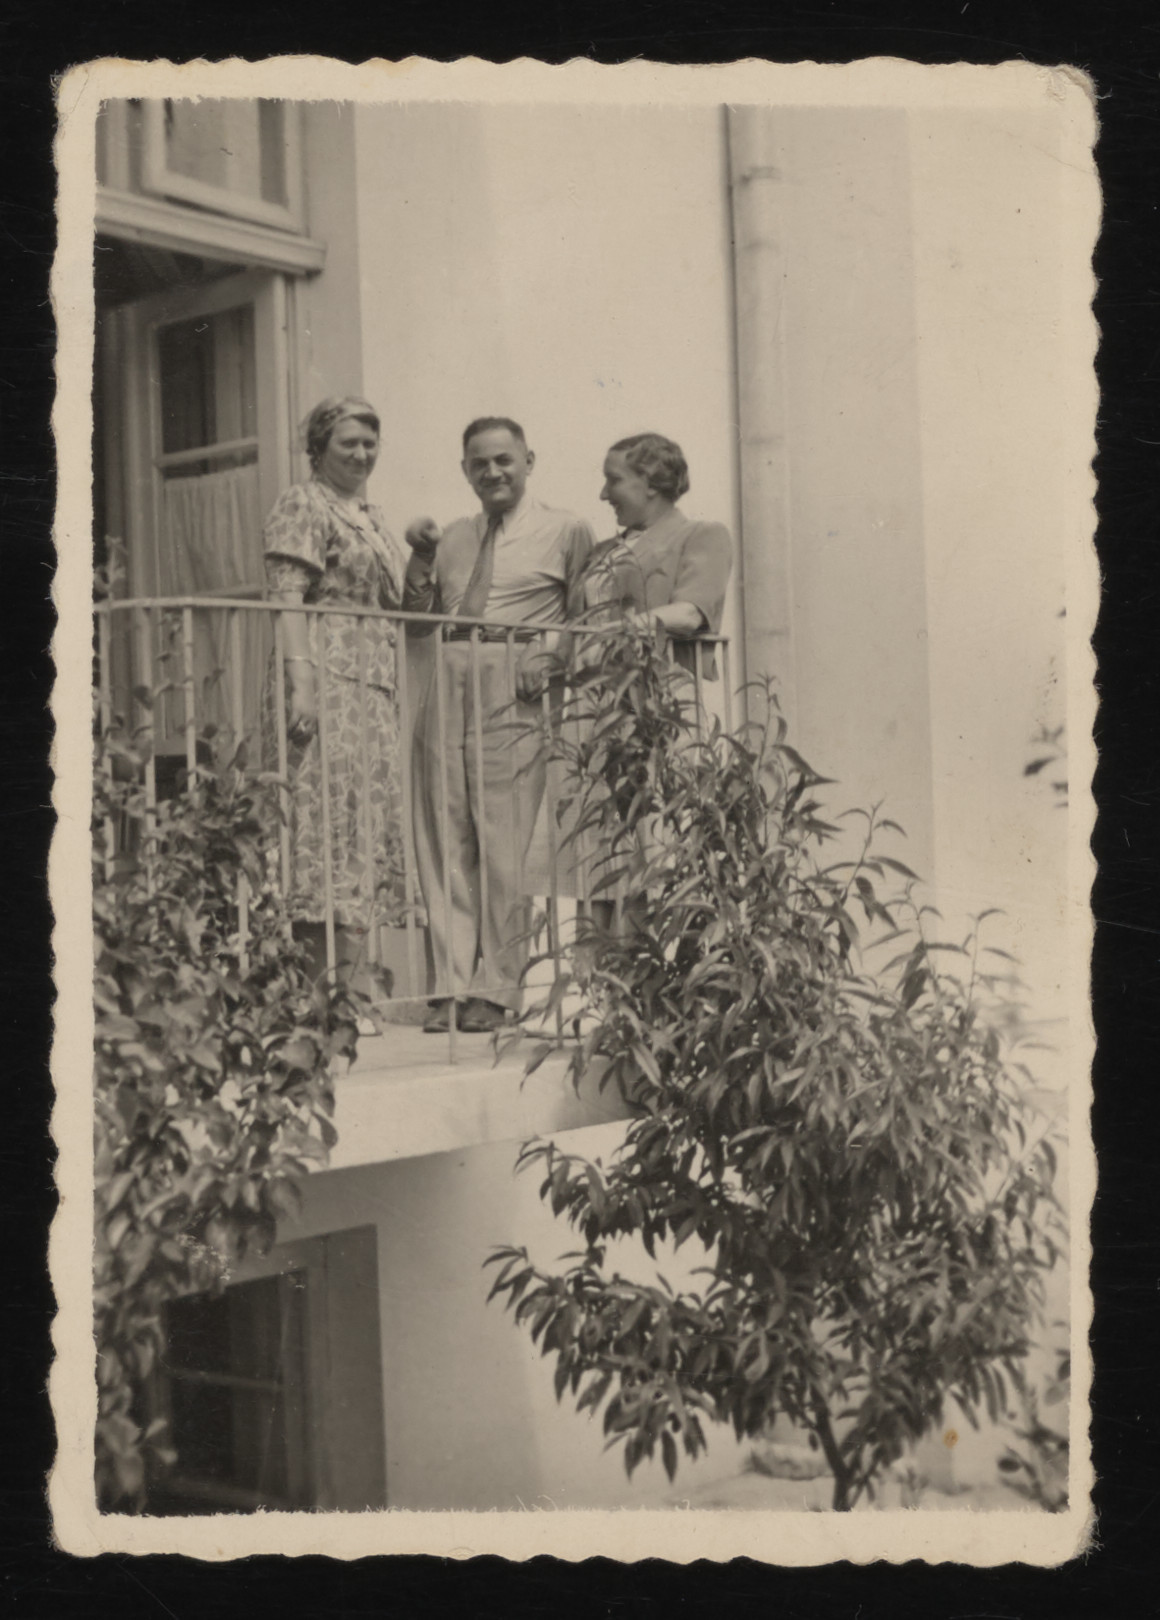 Herman Szczecinski converses with two friends on the balcony of a hotel in the resort town of Truskawiec.  Herman Szczecinski is the uncle of the donor, Gina Tabaczynska.